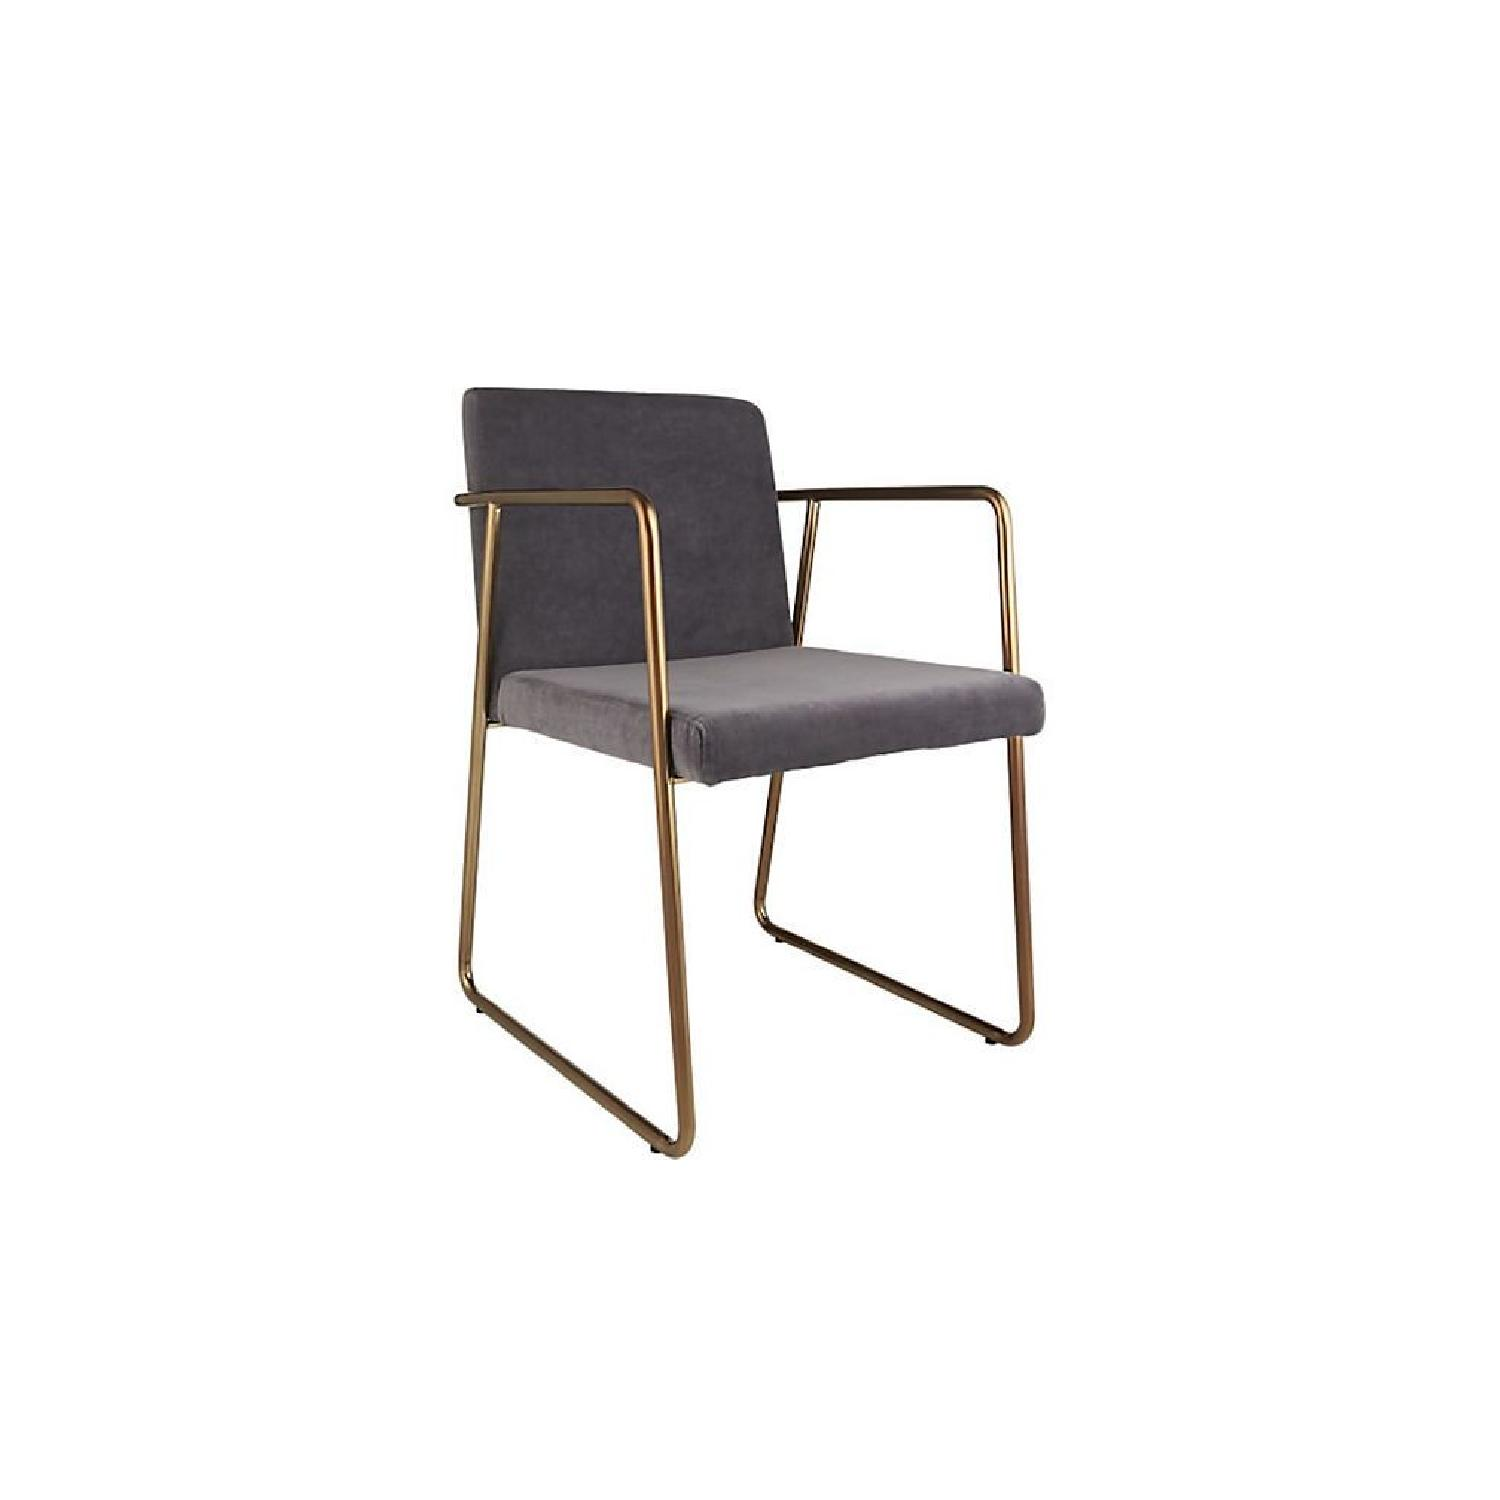 CB2 Rouka Chair